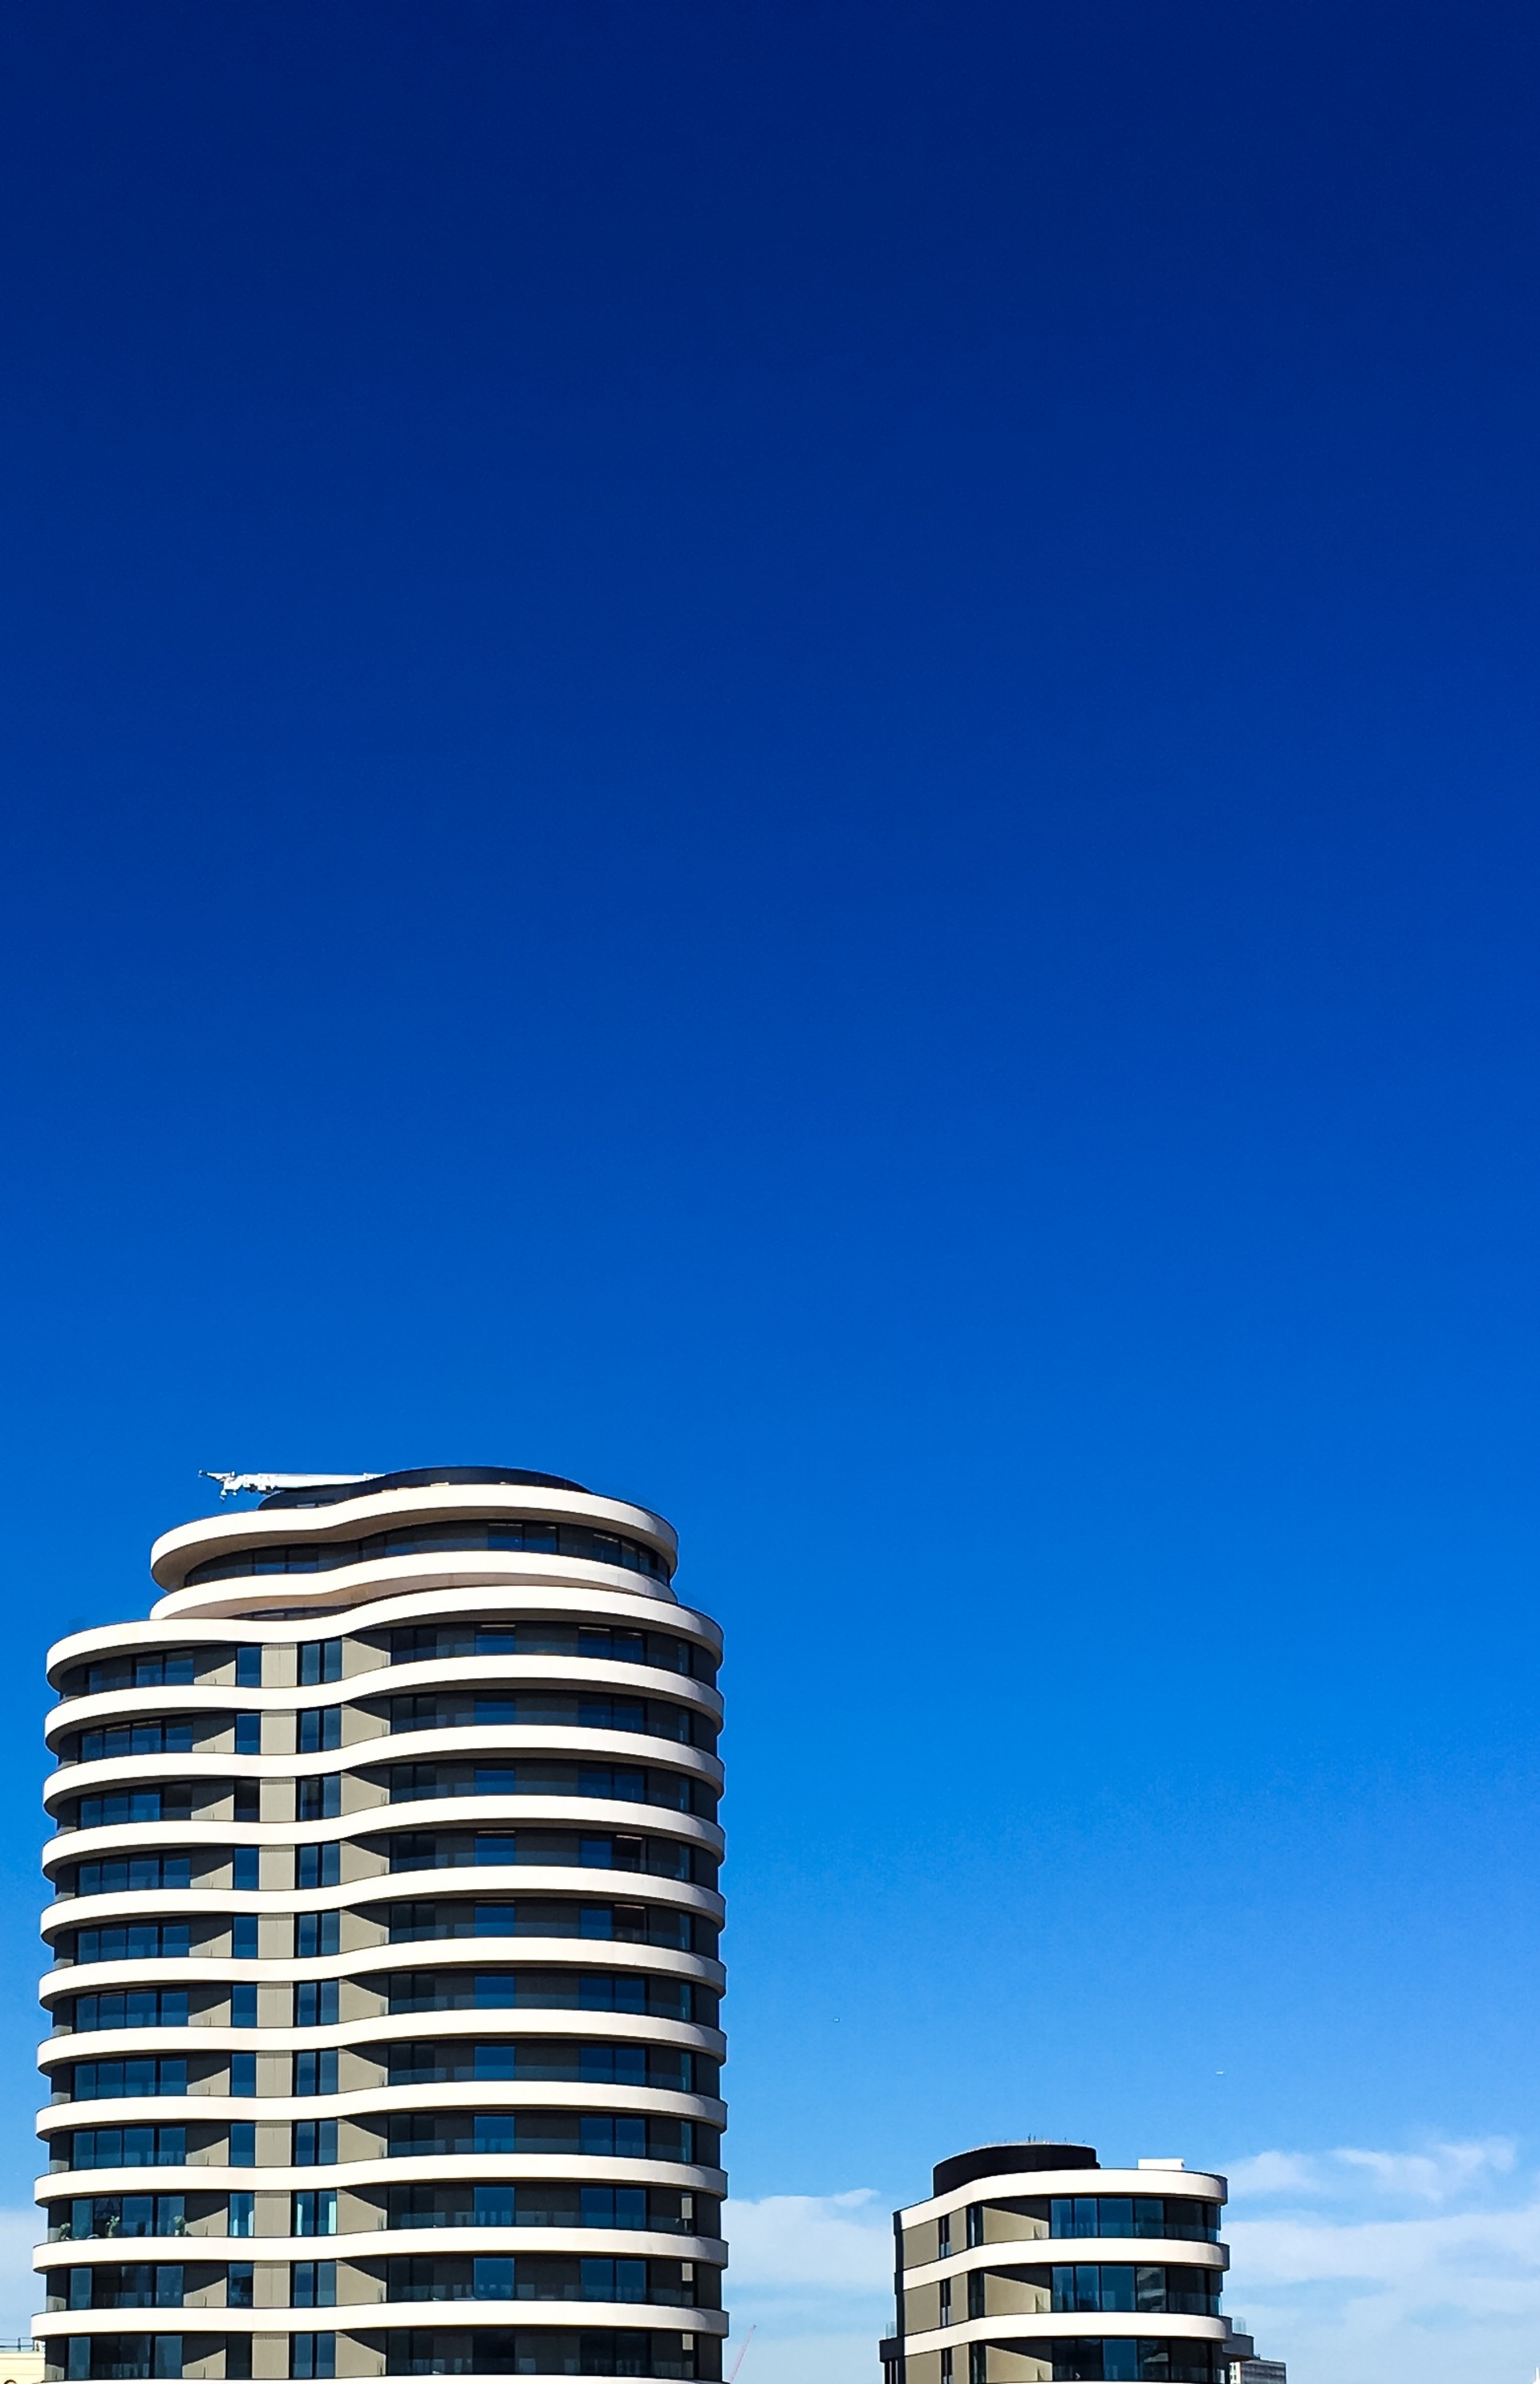 Blue sky  | greendub, architecture, blue sky, bright